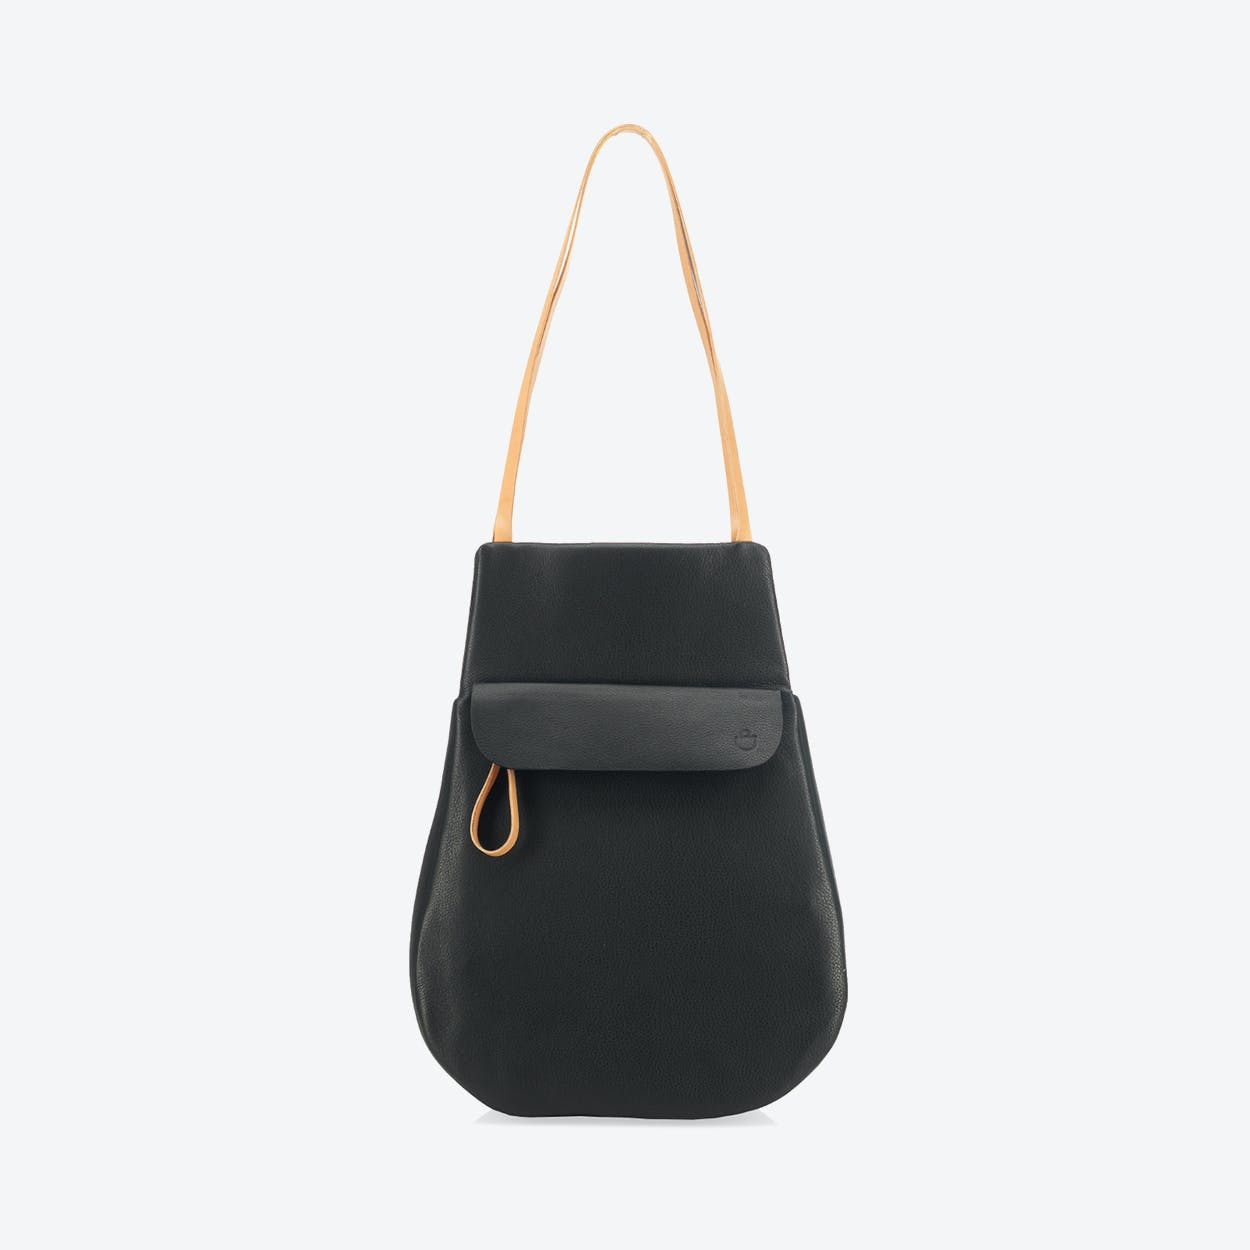 Pia Tote Bag (tanned leather details)